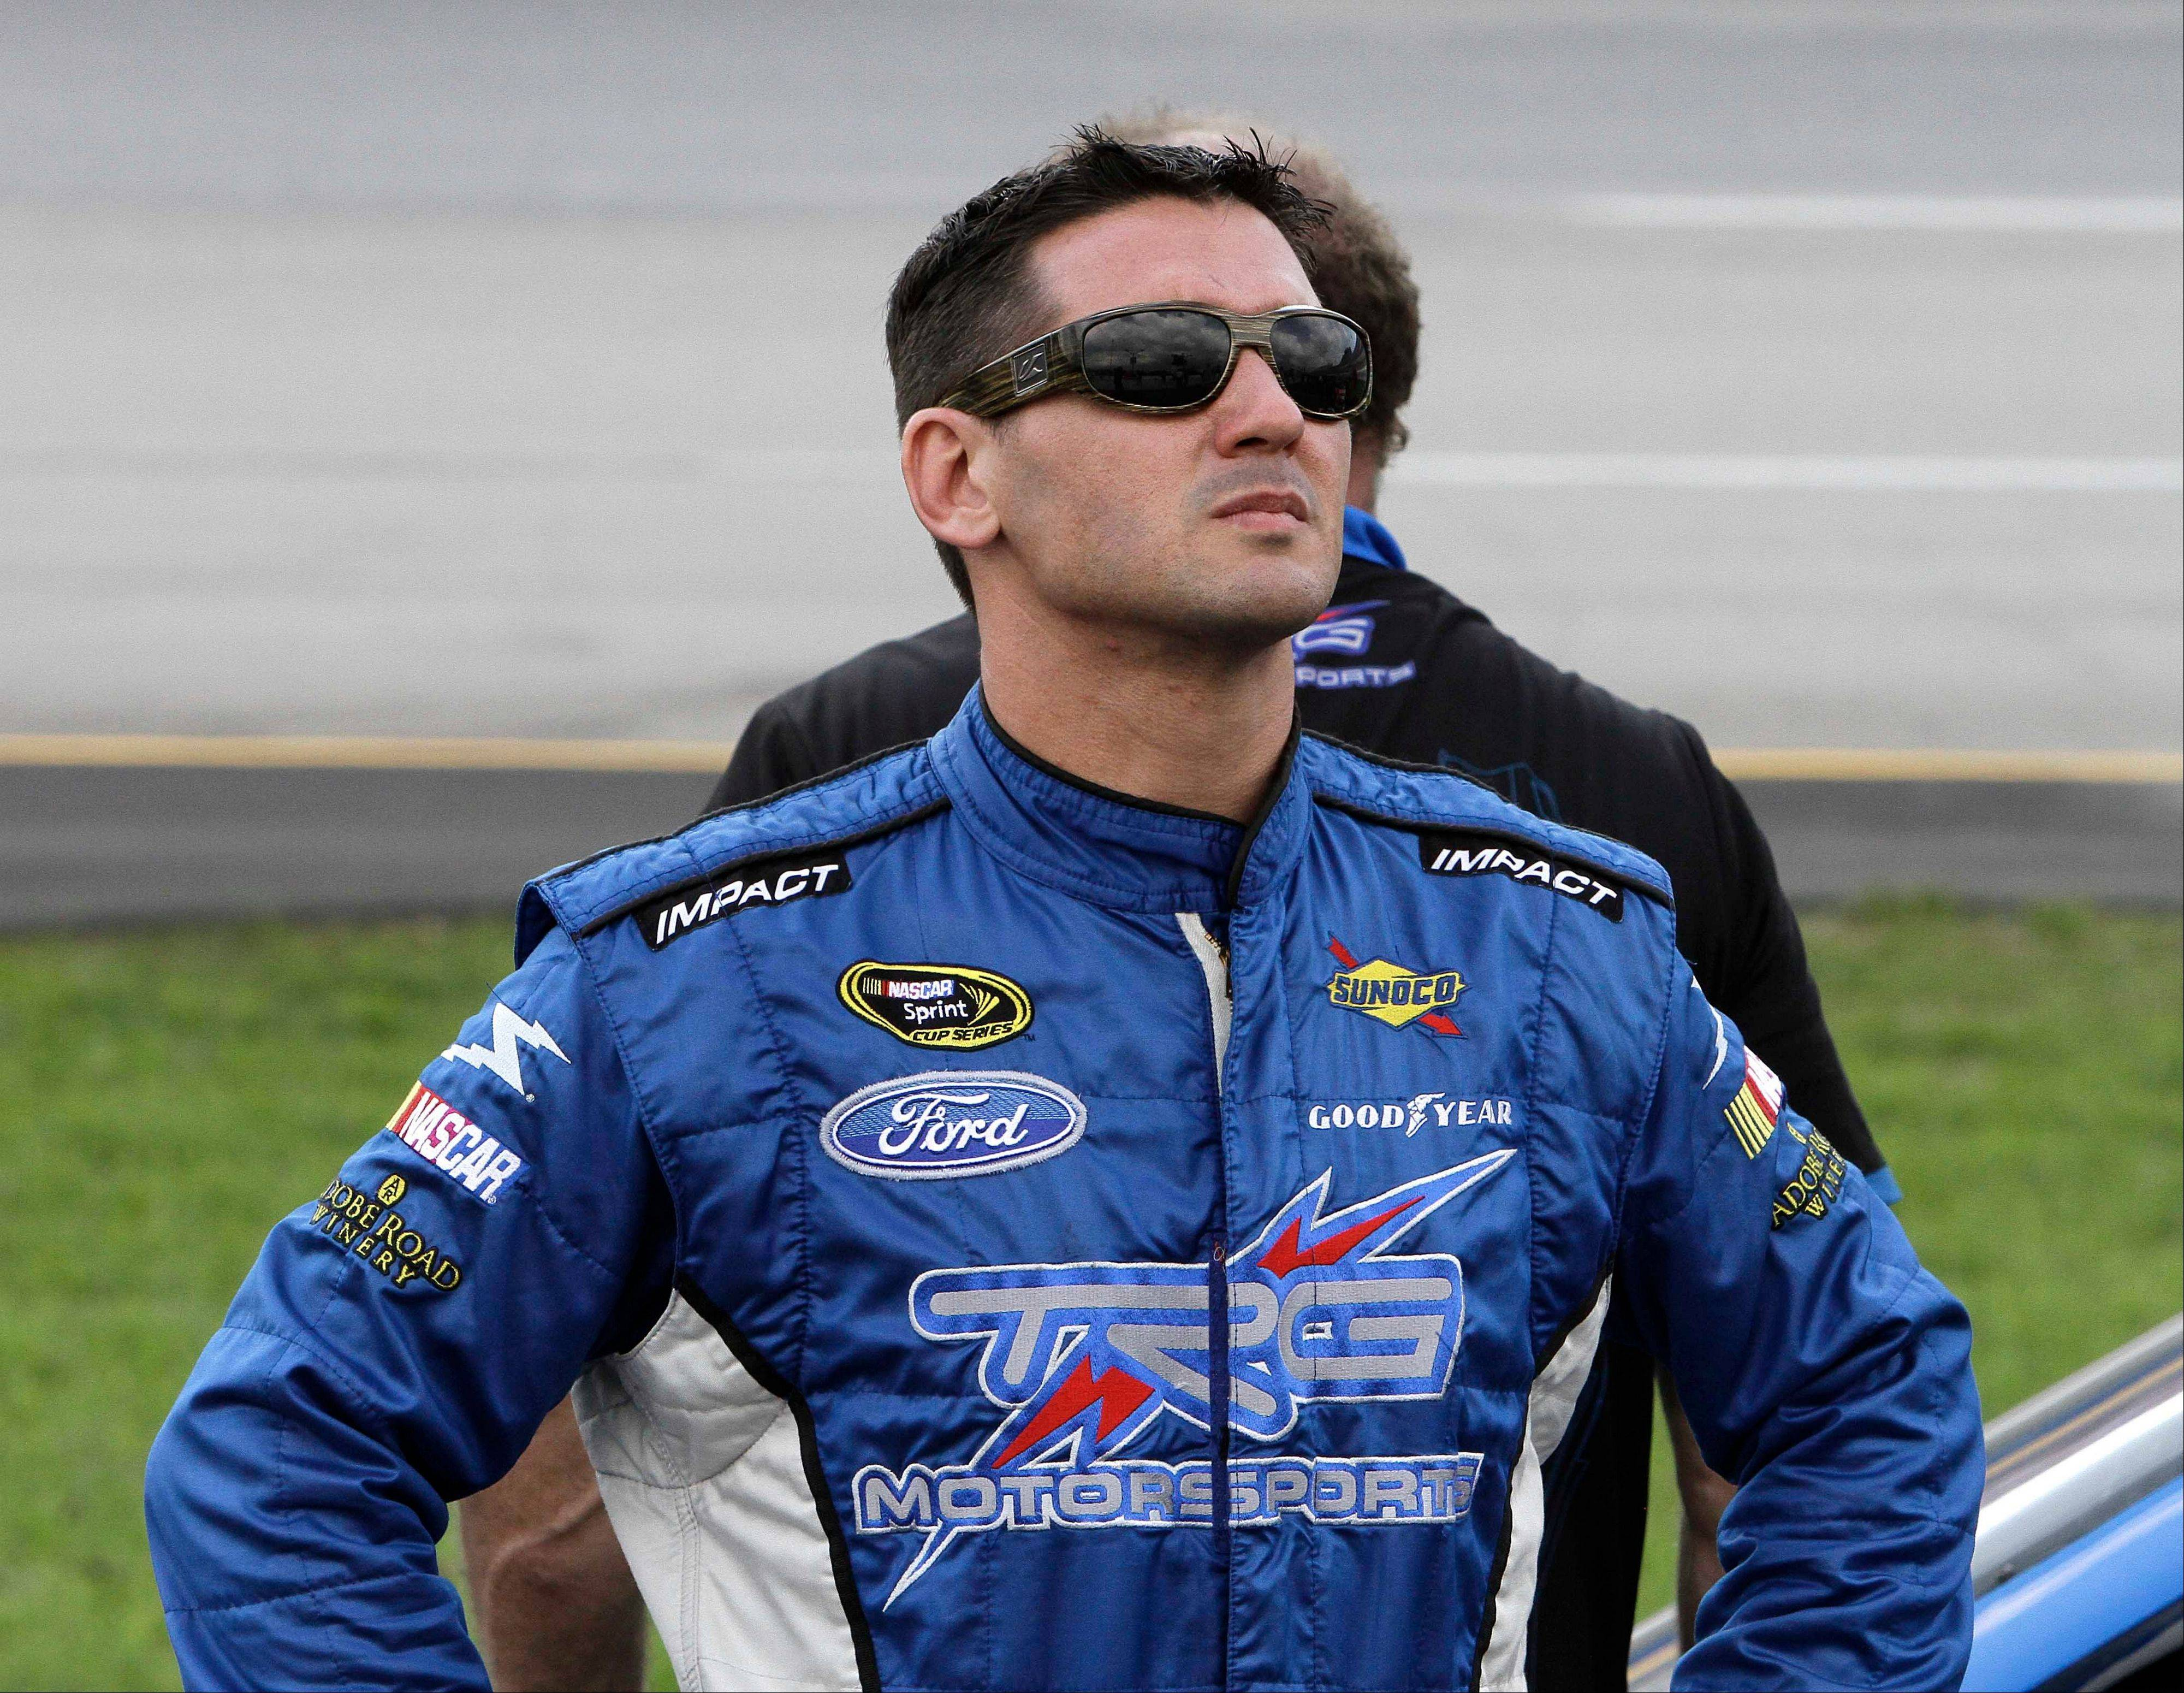 Andy Lally looks to the sky Friday as rain closes in on qualifying for the NASCAR Sprint Cup Series auto race at the Kentucky Speedway.